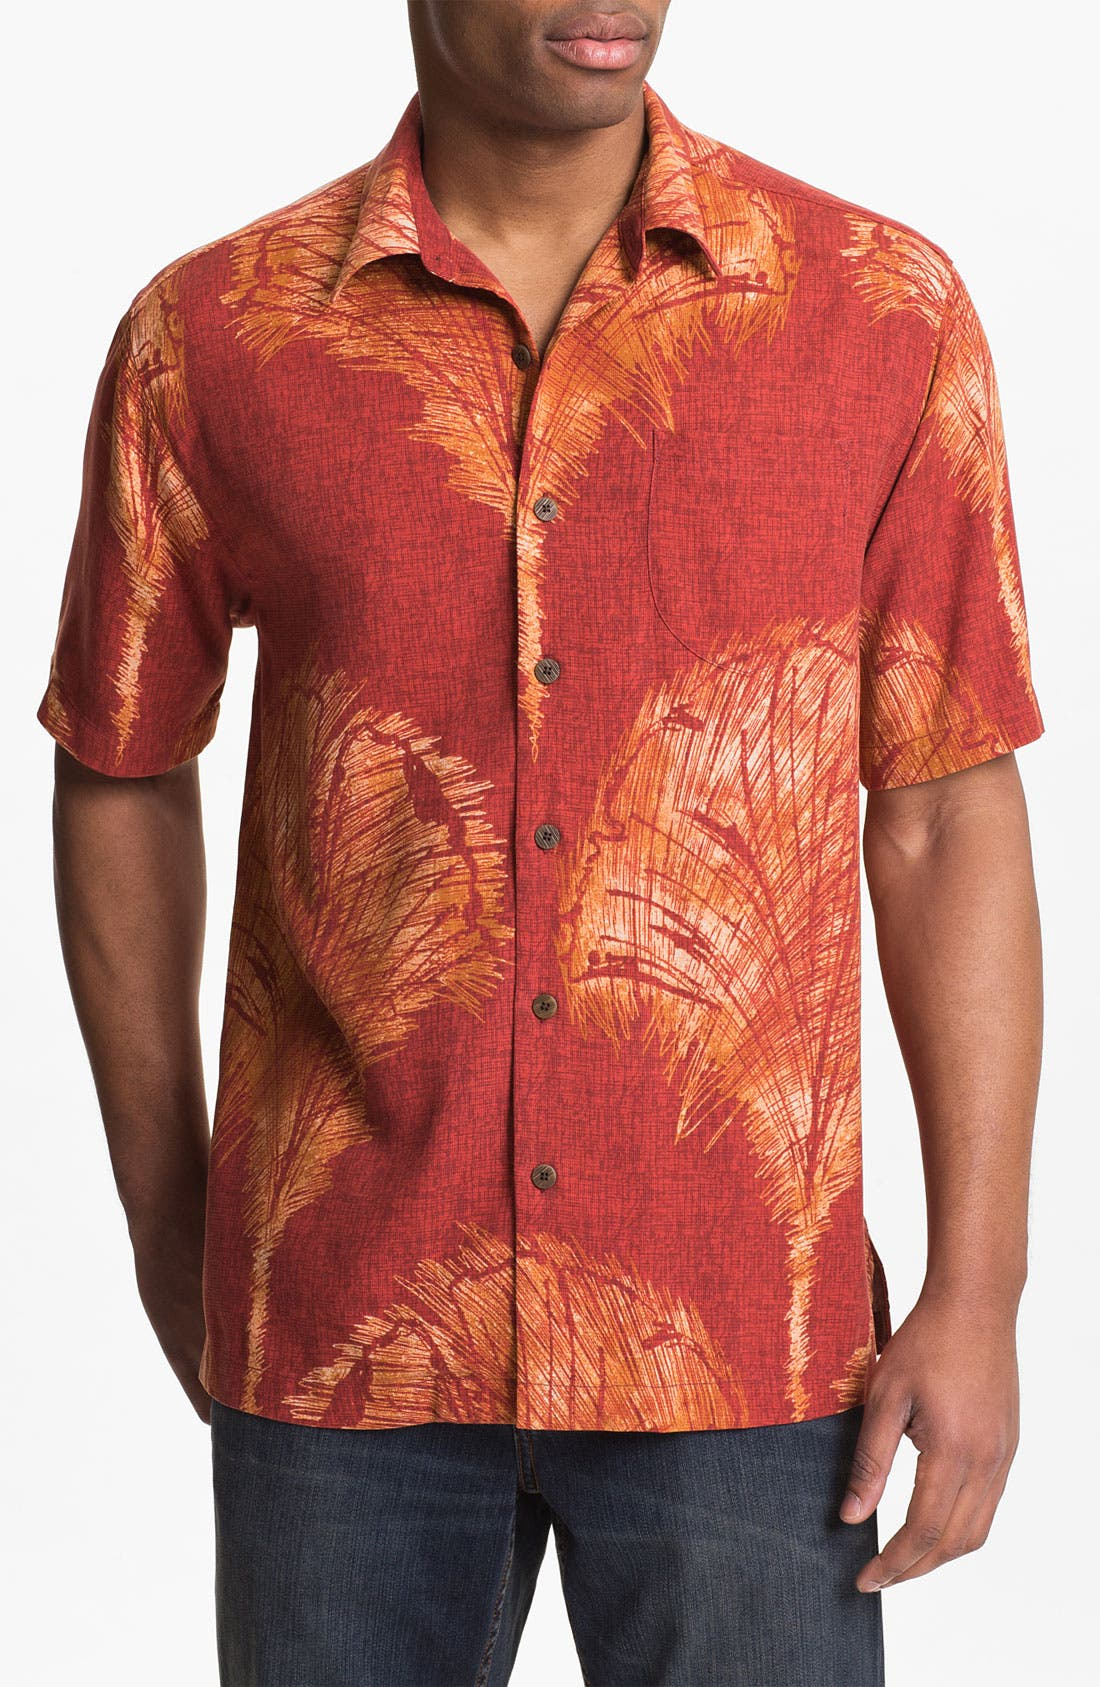 Alternate Image 1 Selected - Tommy Bahama 'Fanarama' Silk Campshirt